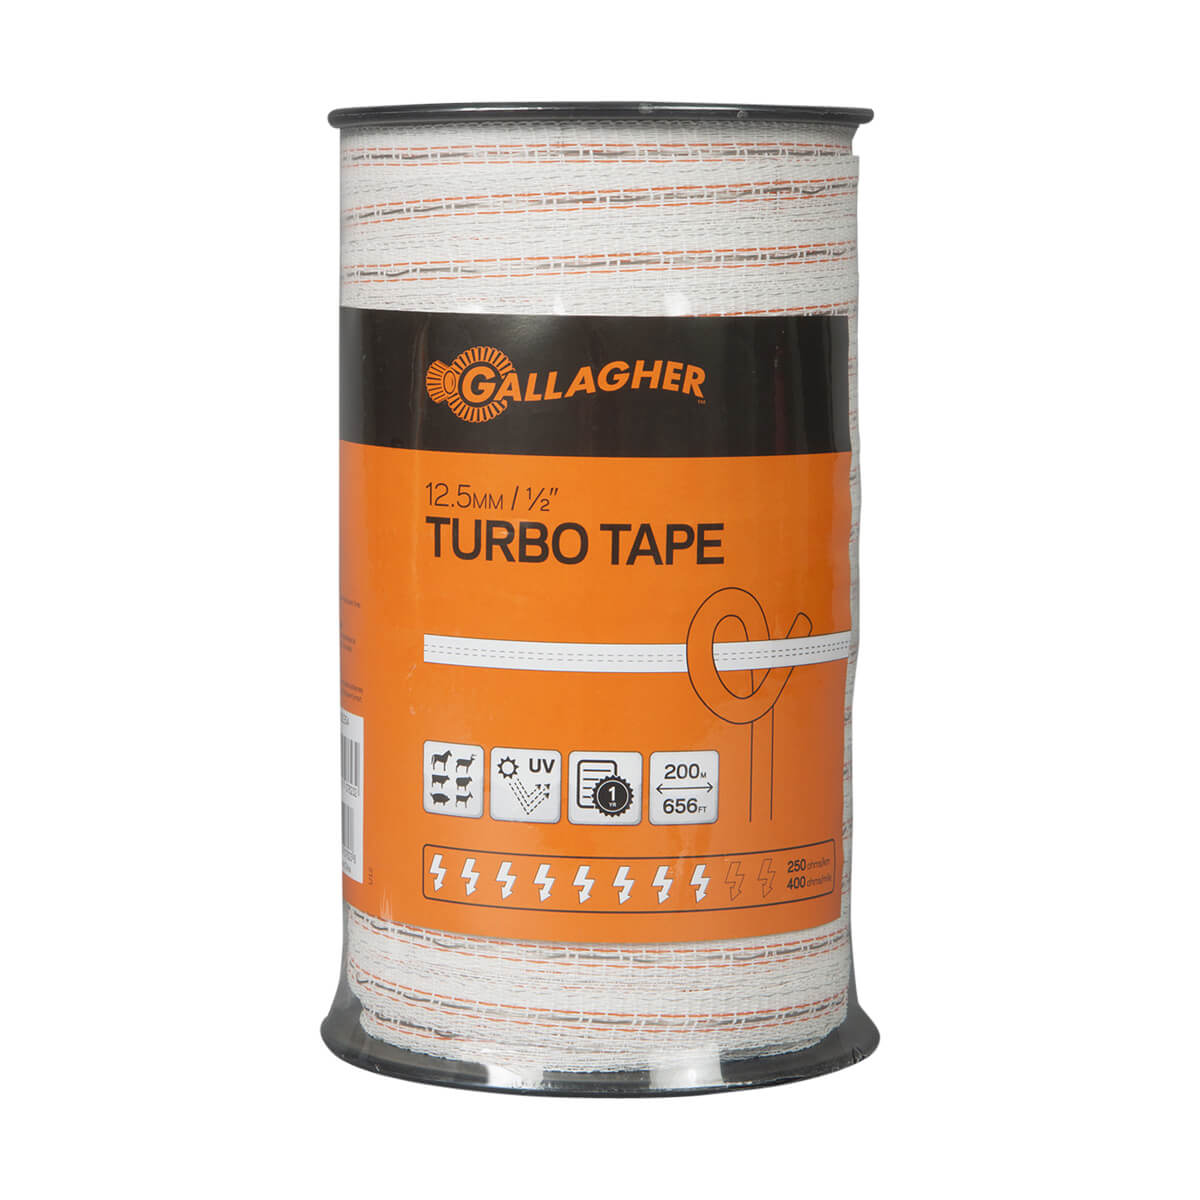 Gallagher 0.5-in Turbo Tape - 200 m